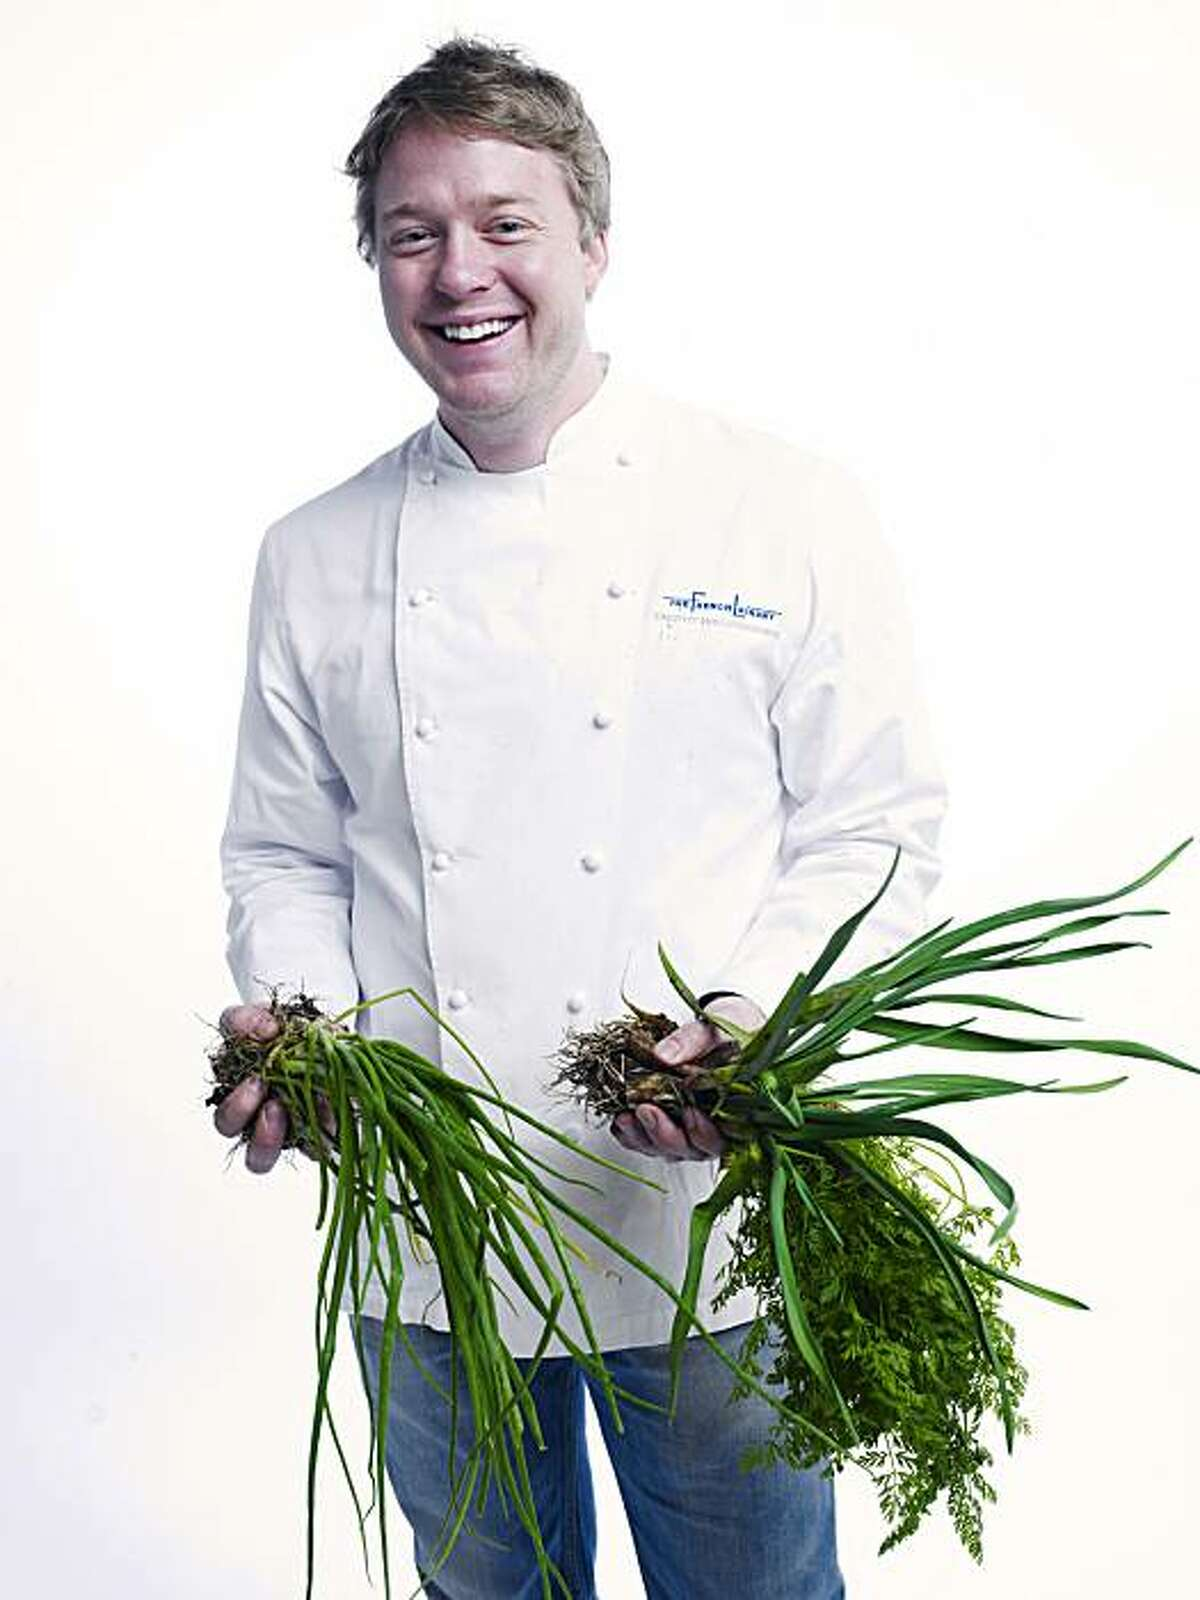 RISINGSTARS_HOLLINGSWORTH04_JOHNLEEPICTURES.JPG Timothy Hollingsworth, chef de cuisine at the French Laundry in Yountville. Photo taken in the Chronicle photo studio. By JOHN LEE/SPECIAL TO THE CHRONICLE